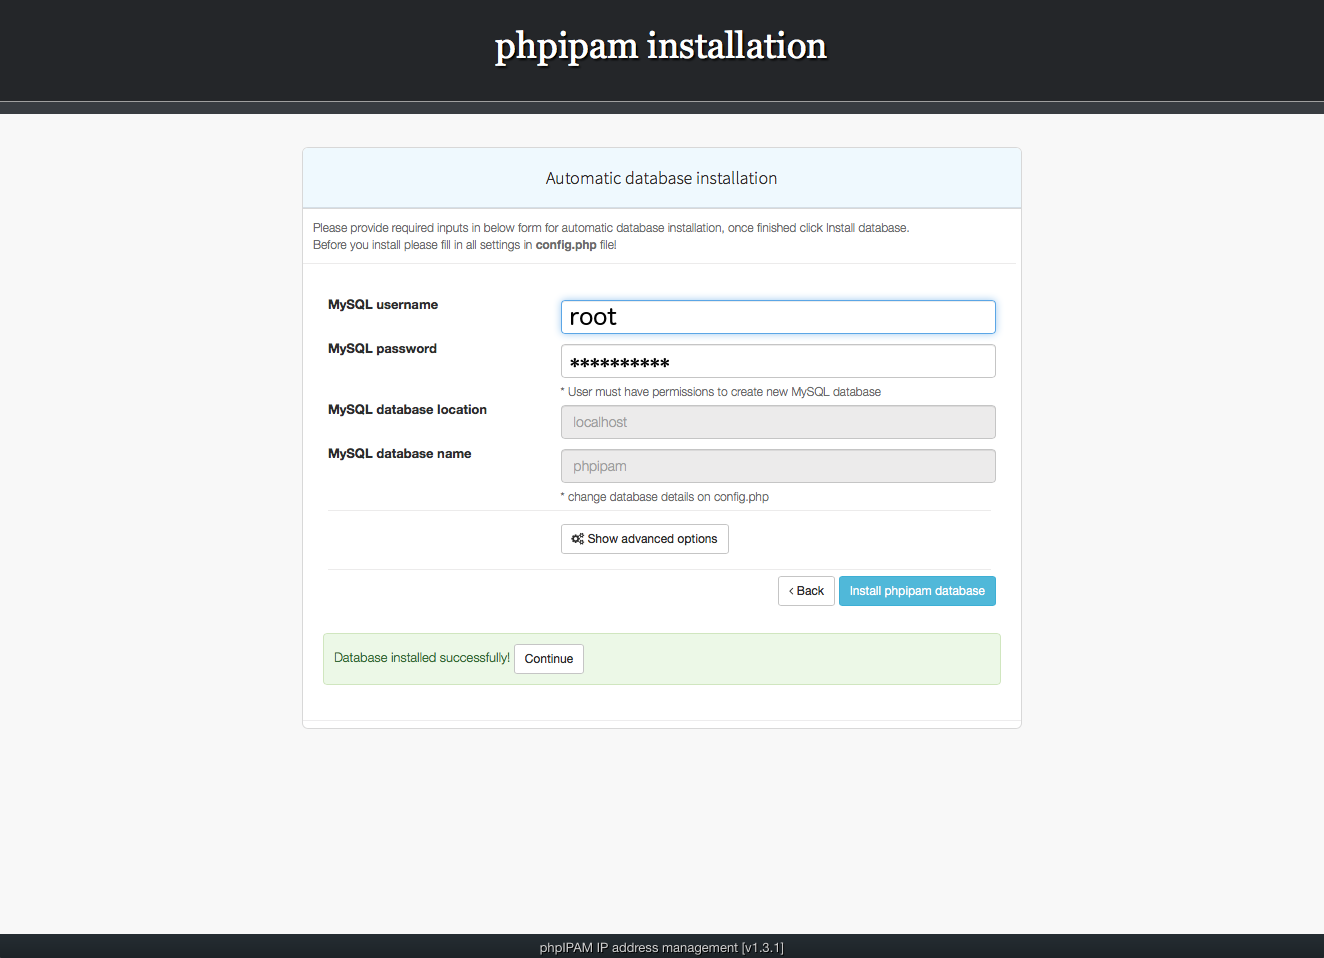 Installing phpIPAM, step 4